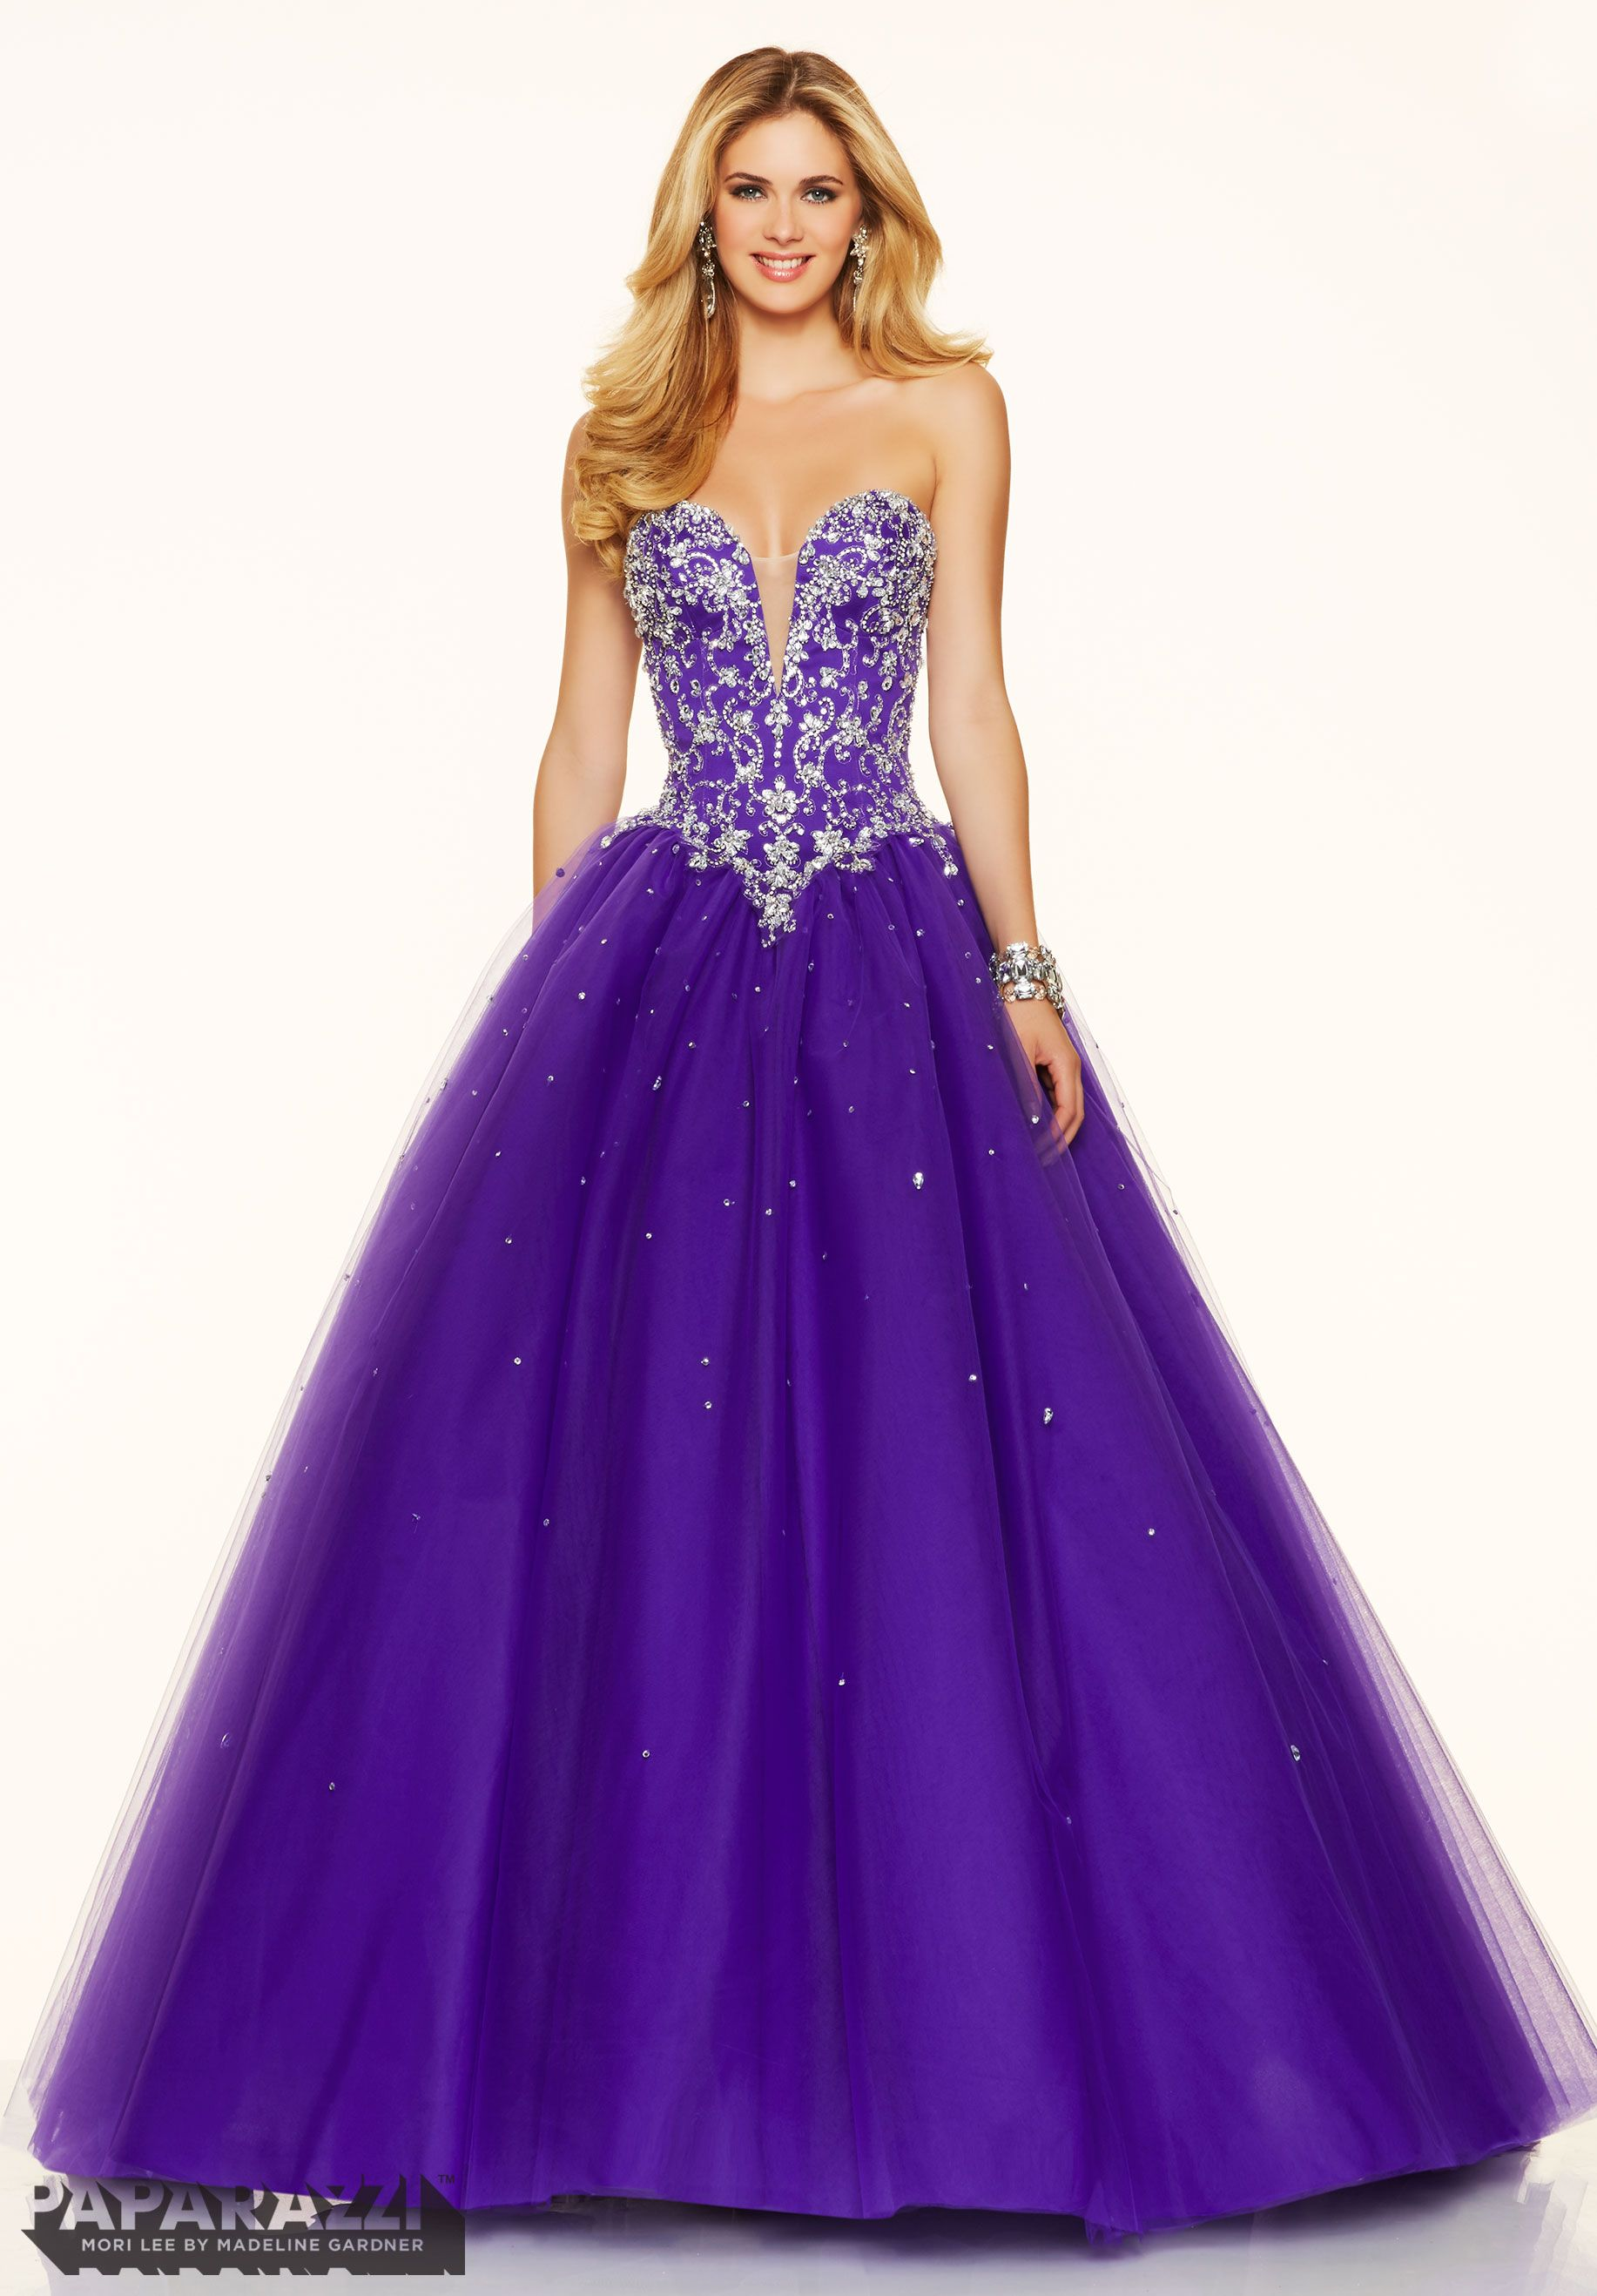 lexibrazelton tihs will be available at Bridal Collections Prom ...